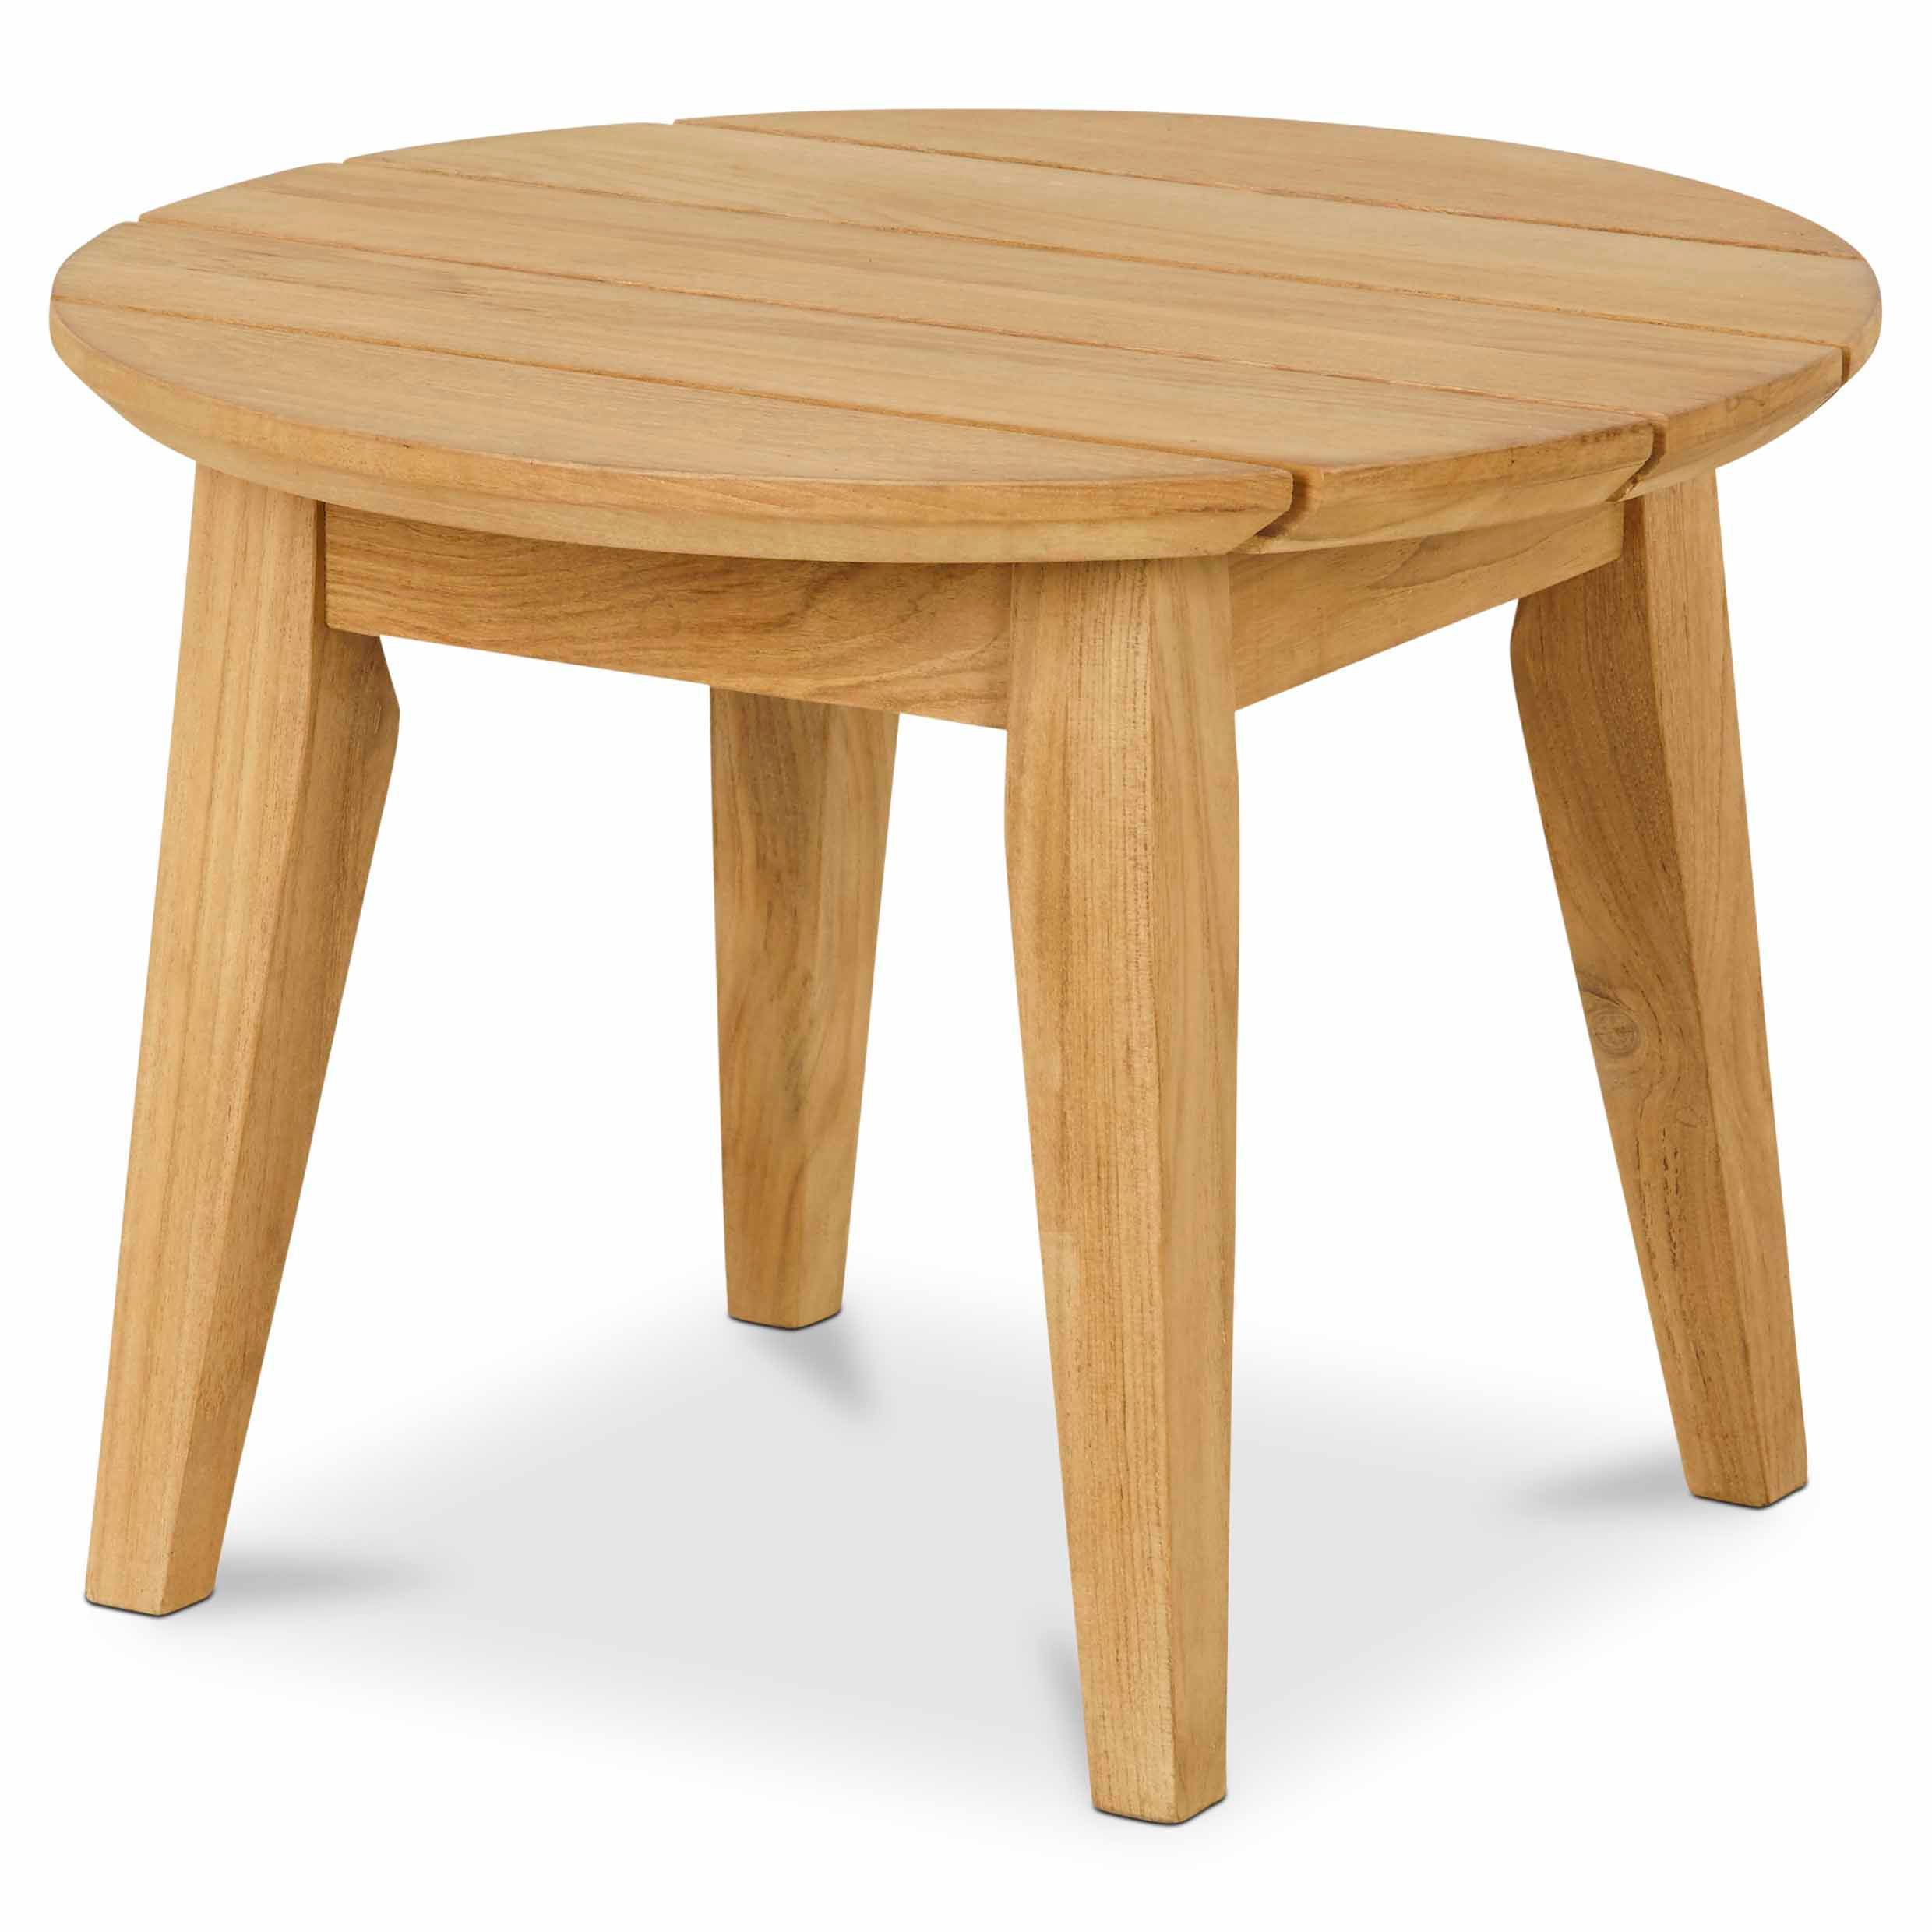 Adonia side table dia48cm